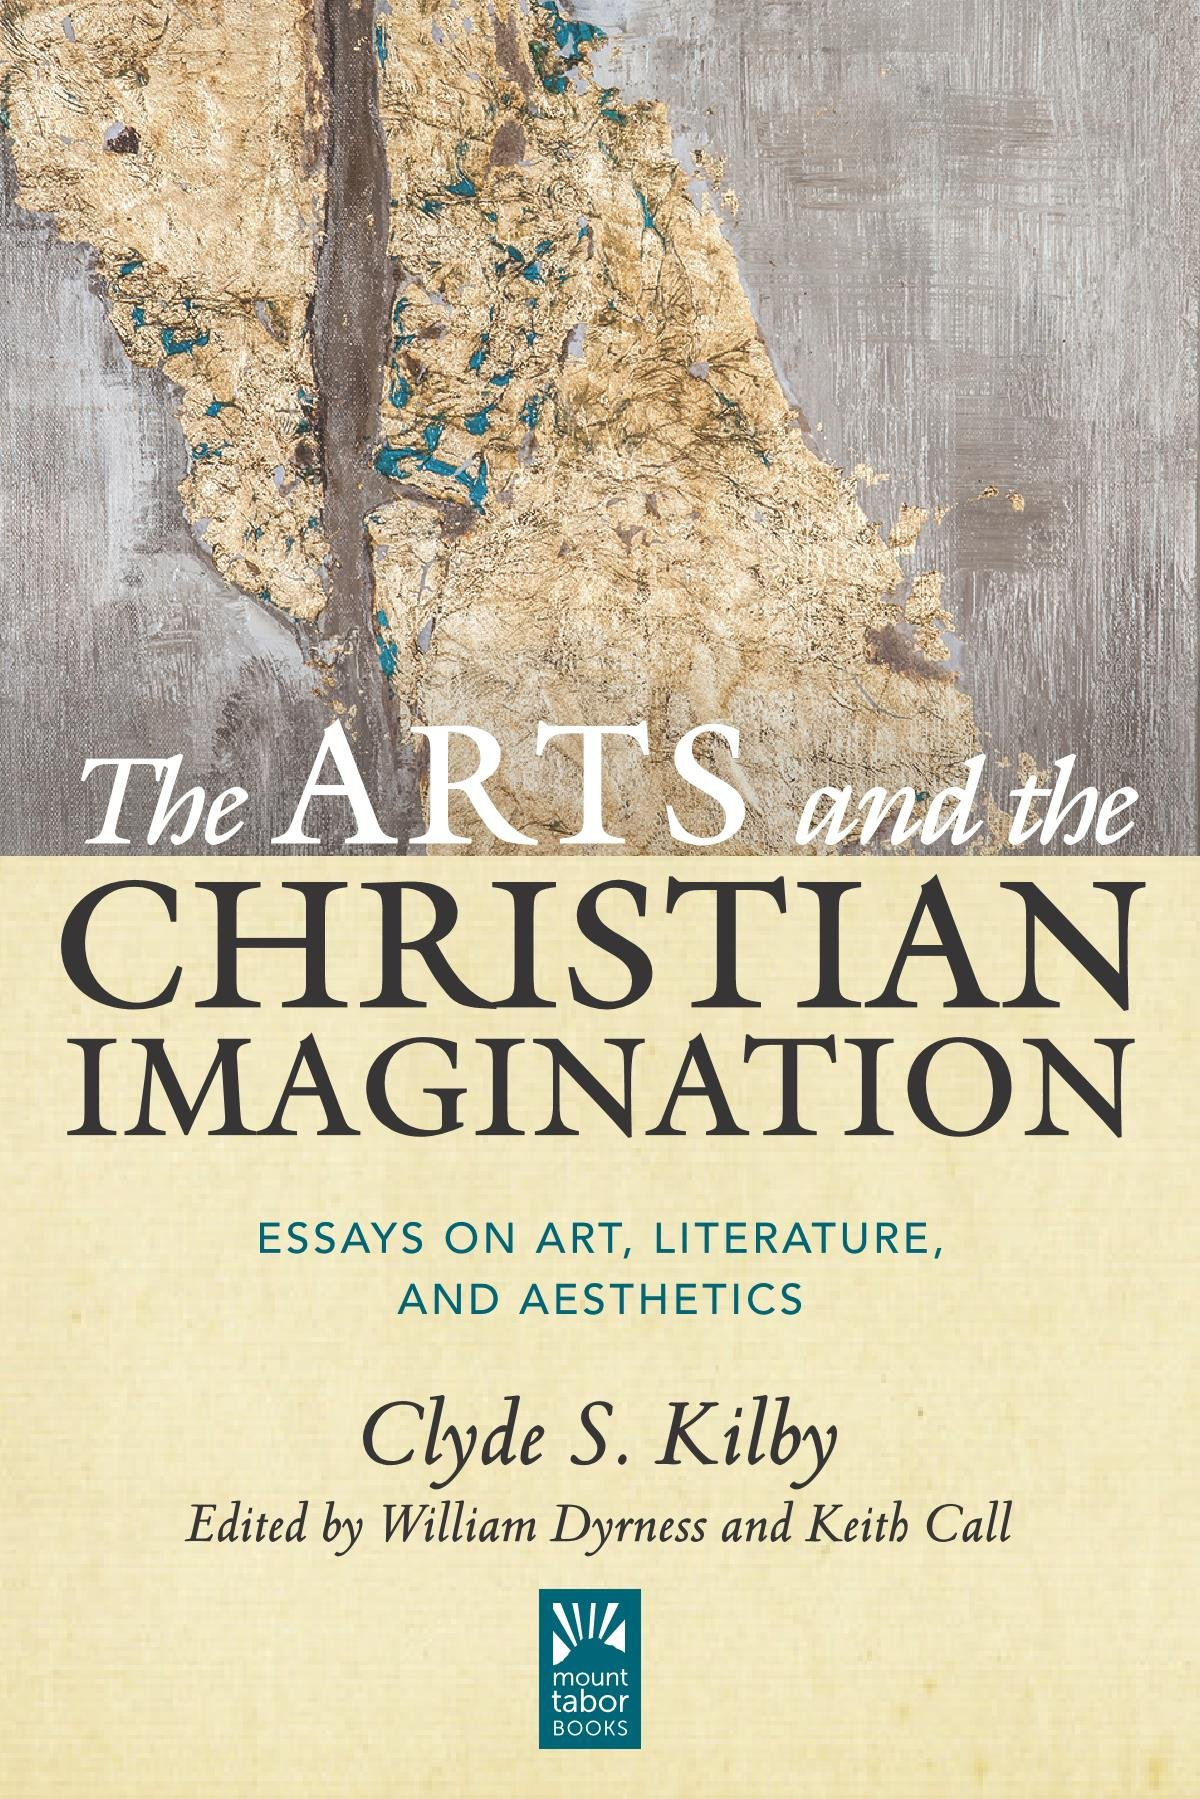 the arts and the christian imagination essays on art literature the arts and the christian imagination essays on art literature and aesthetics mount tabor books clyde s kilby william dyrness